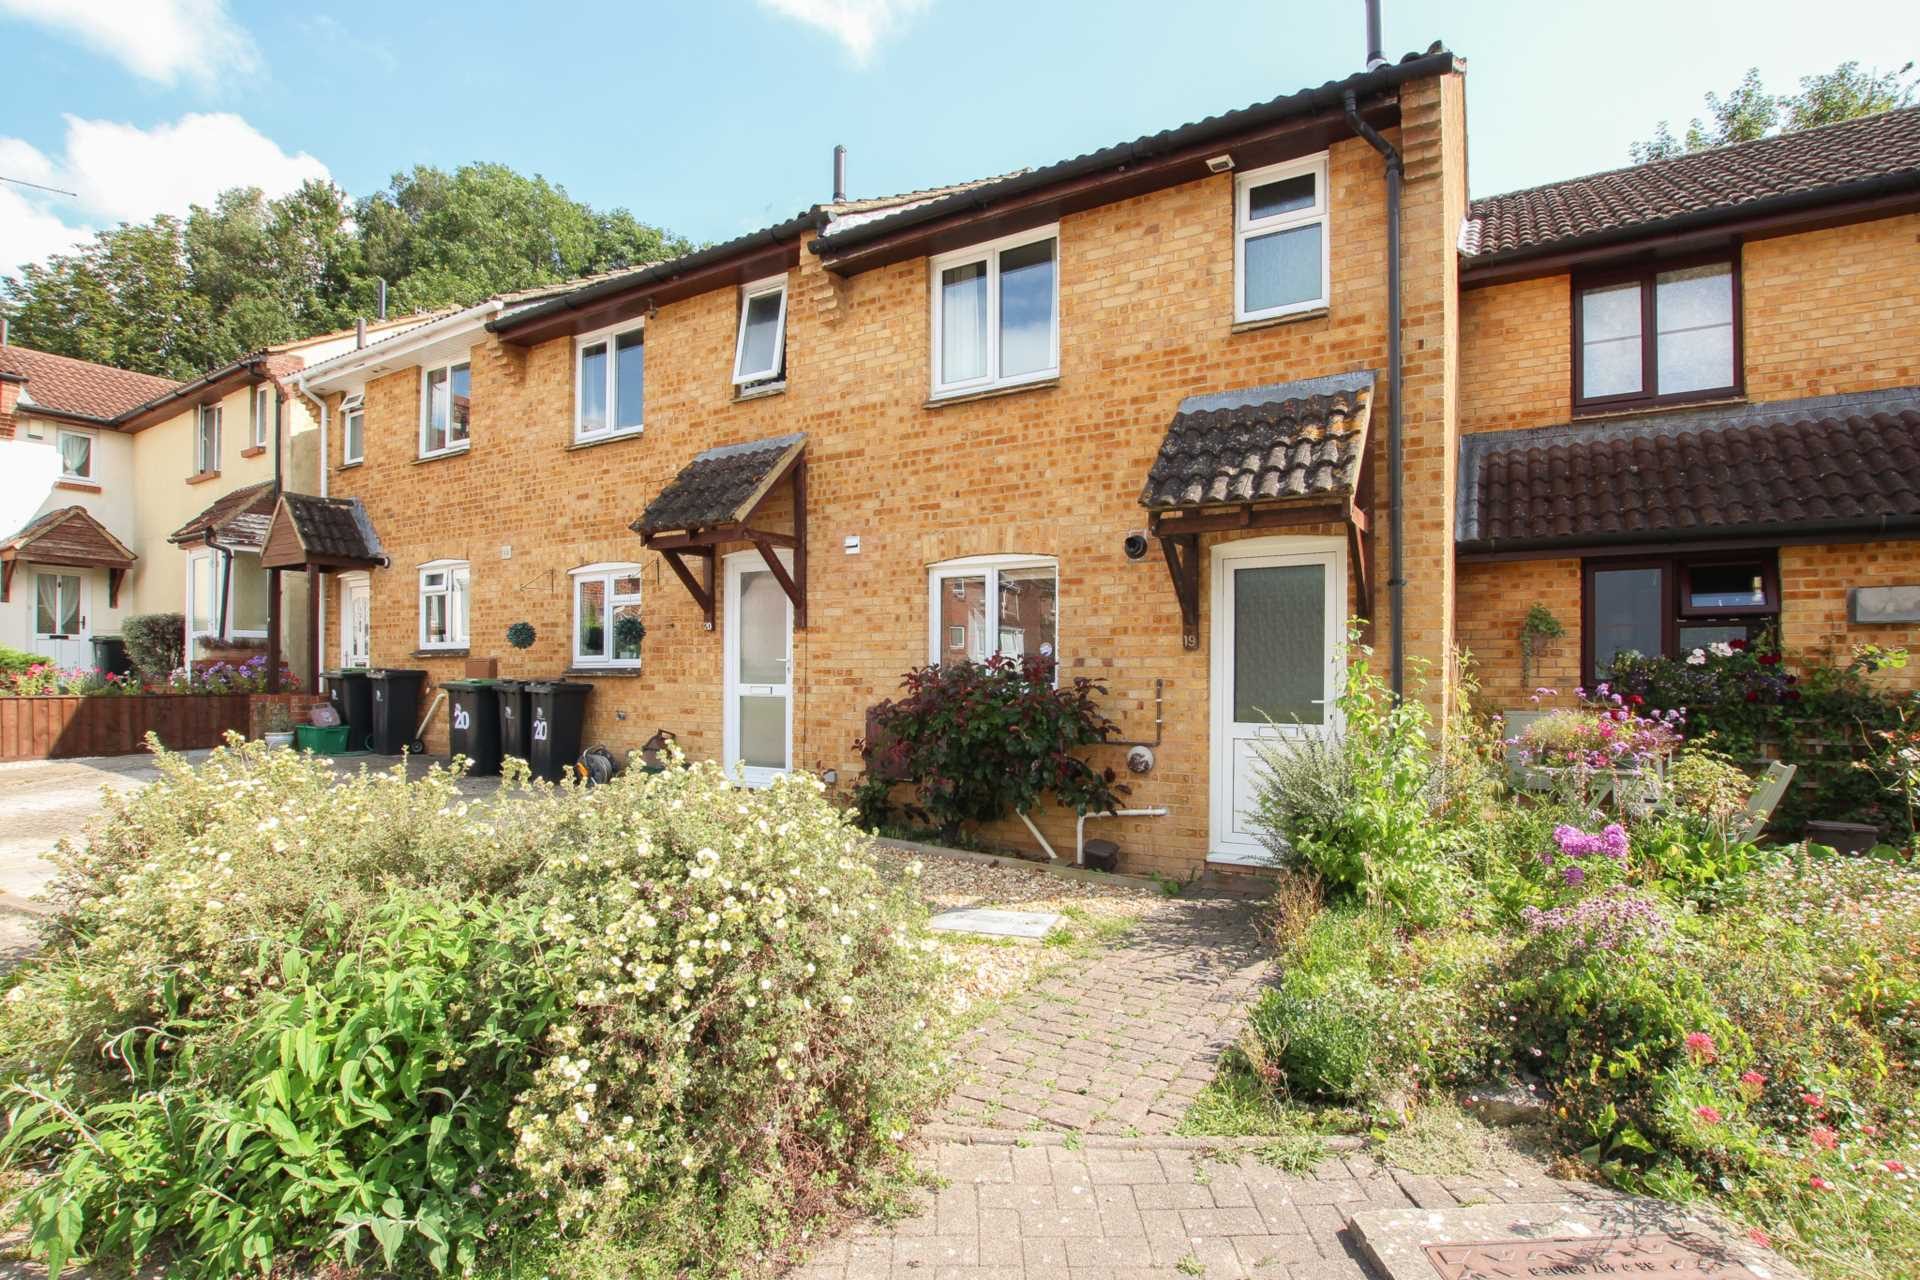 2 bed terraced house for sale in Eastleaze Road, Blandford Forum - Property Image 1